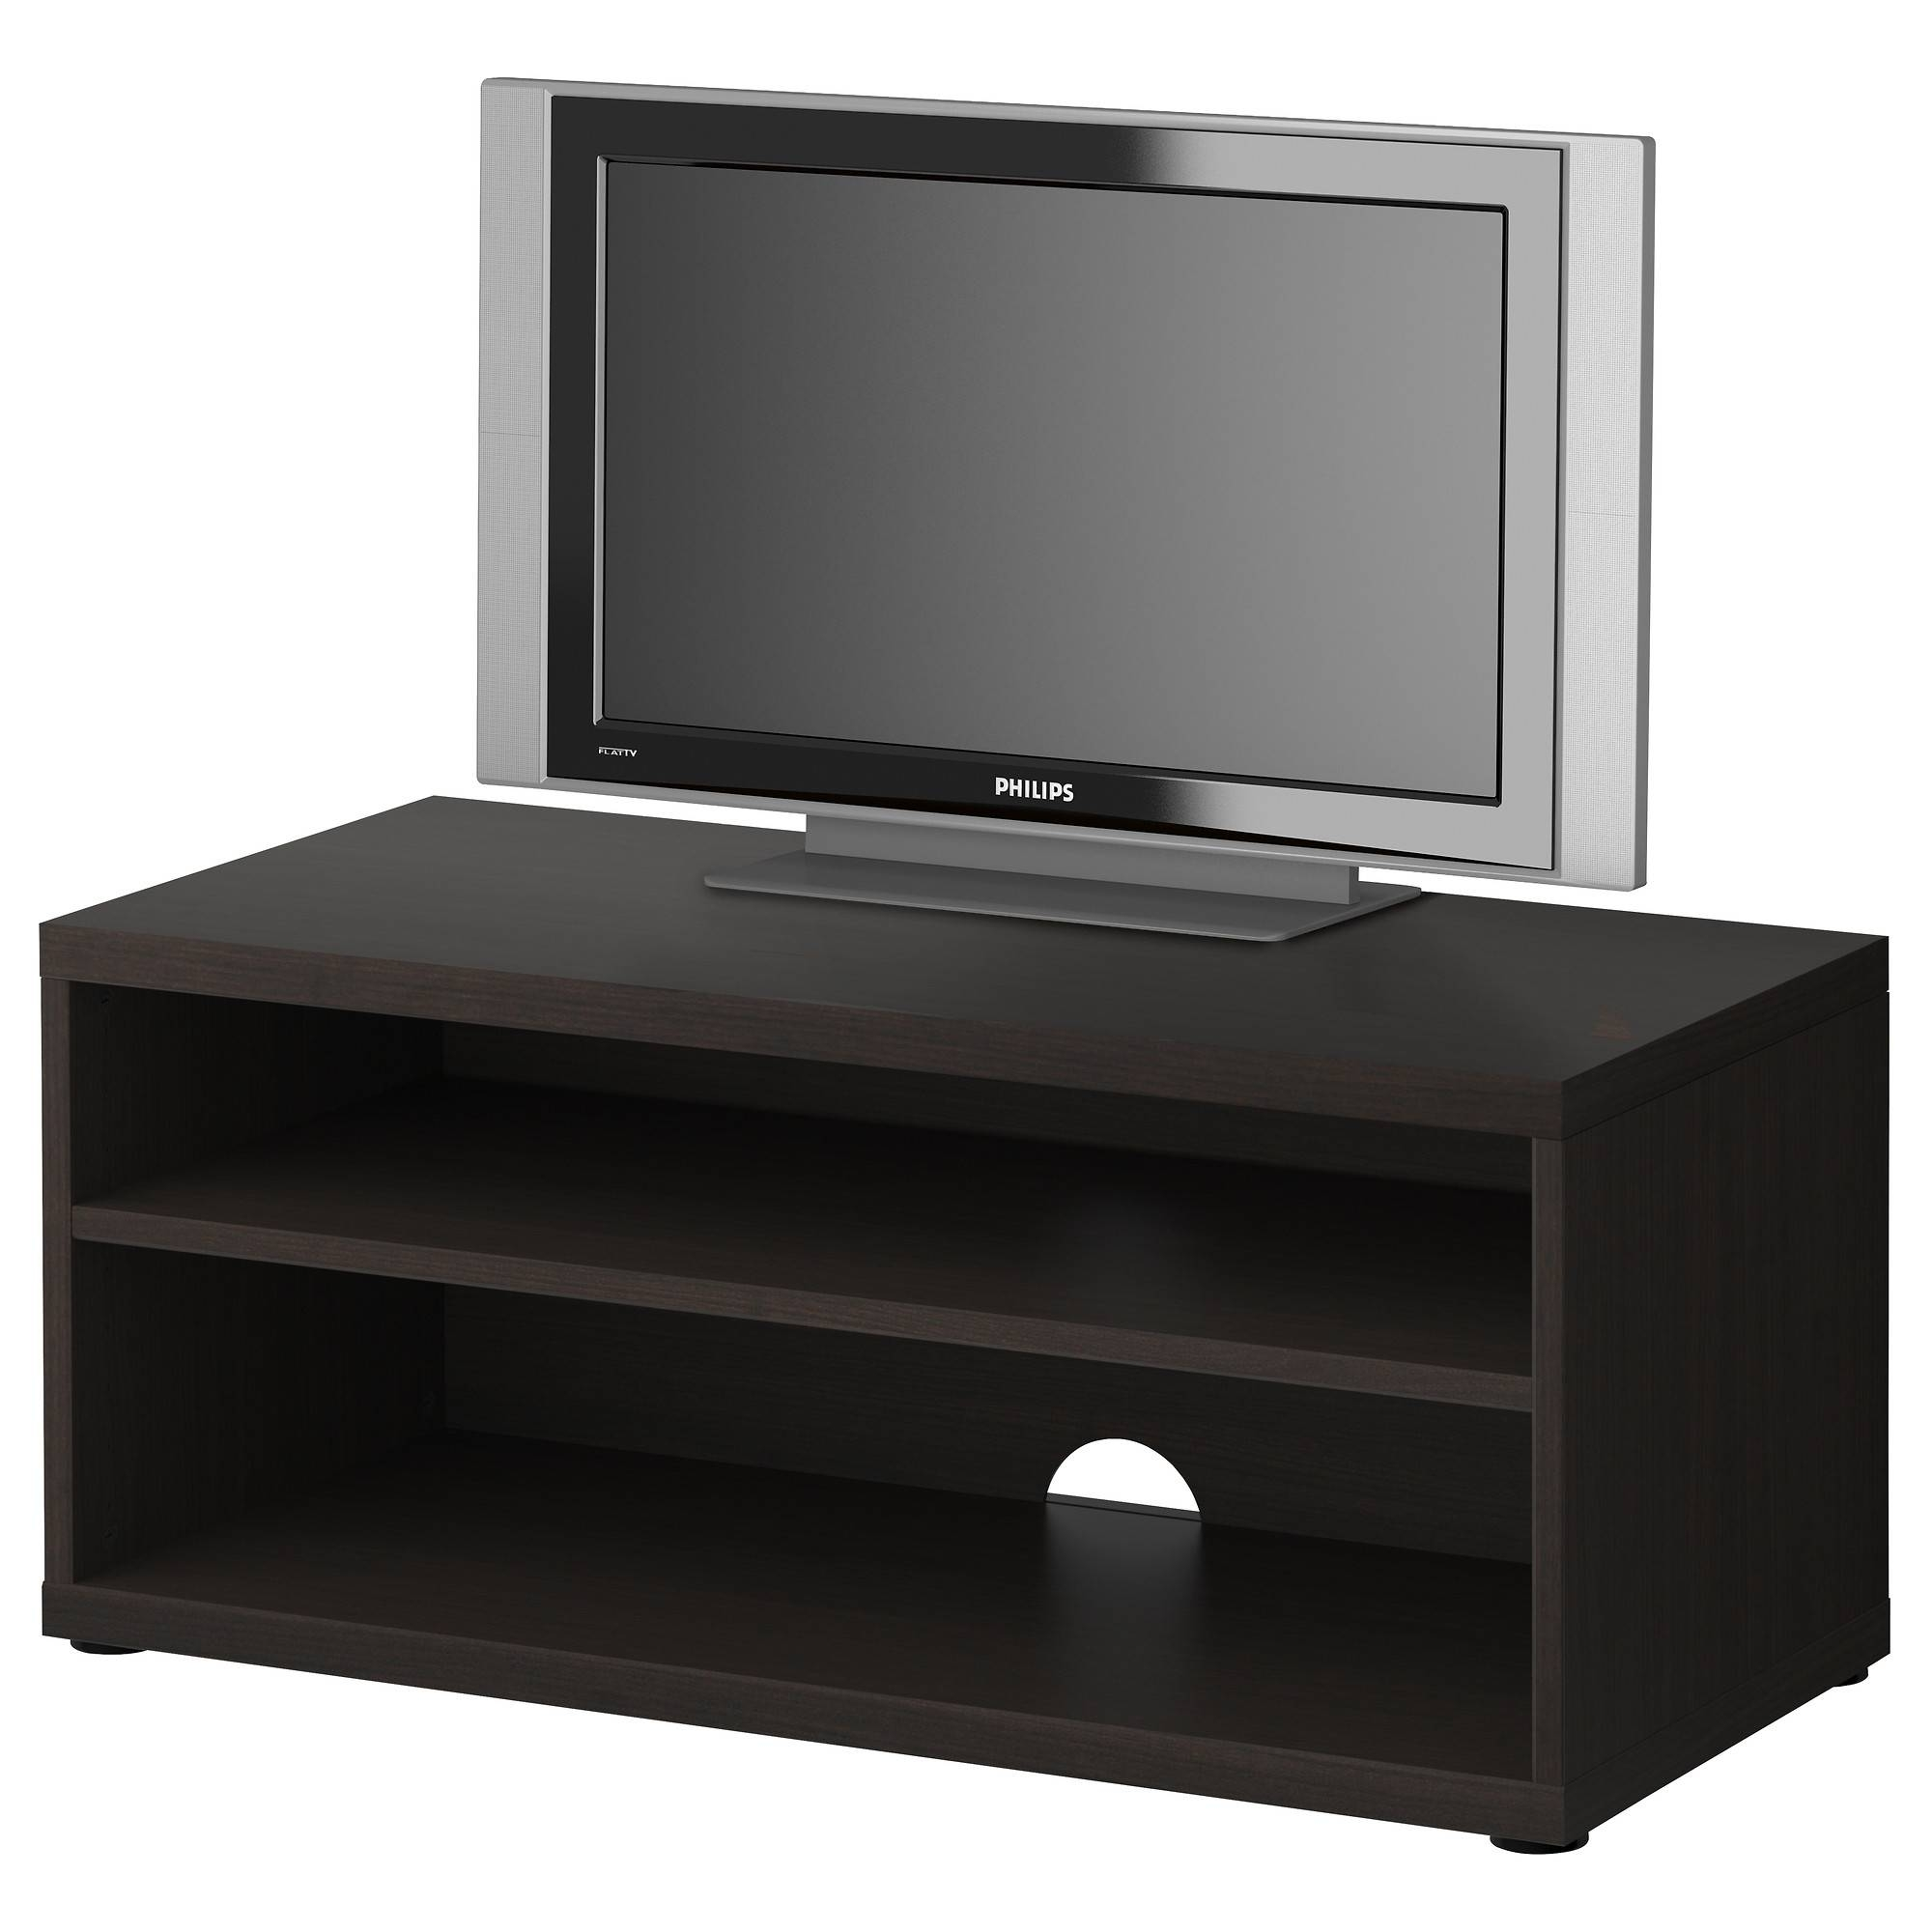 Mosjö Tv Bench Black-Brown 90X40X38 Cm - Ikea within Long Tv Stands Furniture (Image 10 of 15)